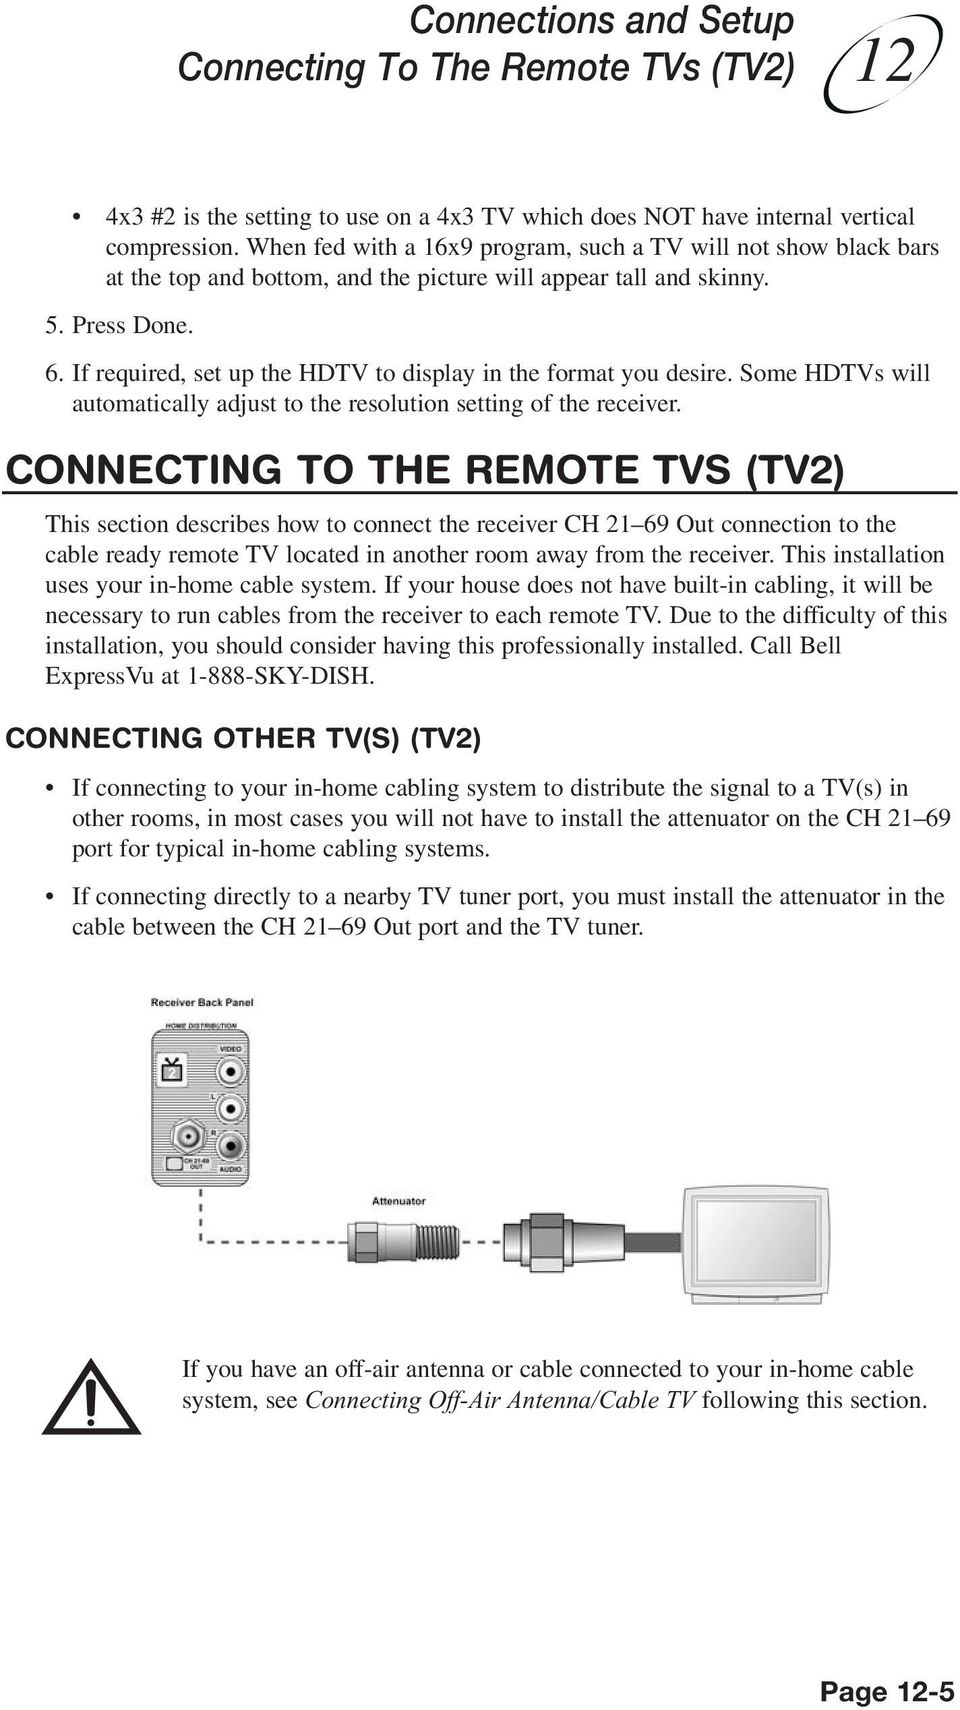 If required, set up the HDTV to display in the format you desire. Some HDTVs will automatically adjust to the resolution setting of the receiver.